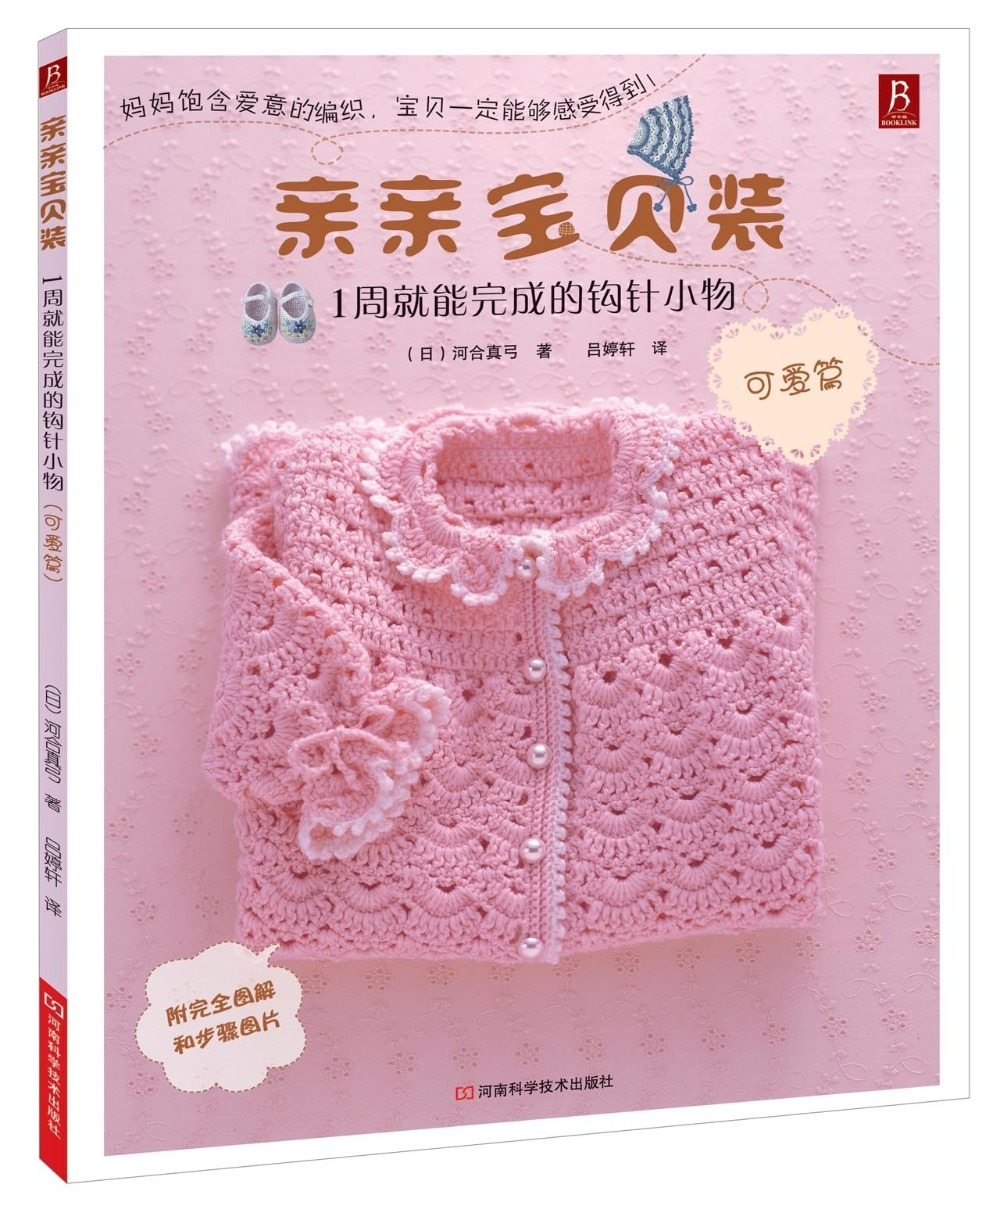 Chinese Knitting book A small crochet hook that can be completed in 1 weeks for kids baby цена